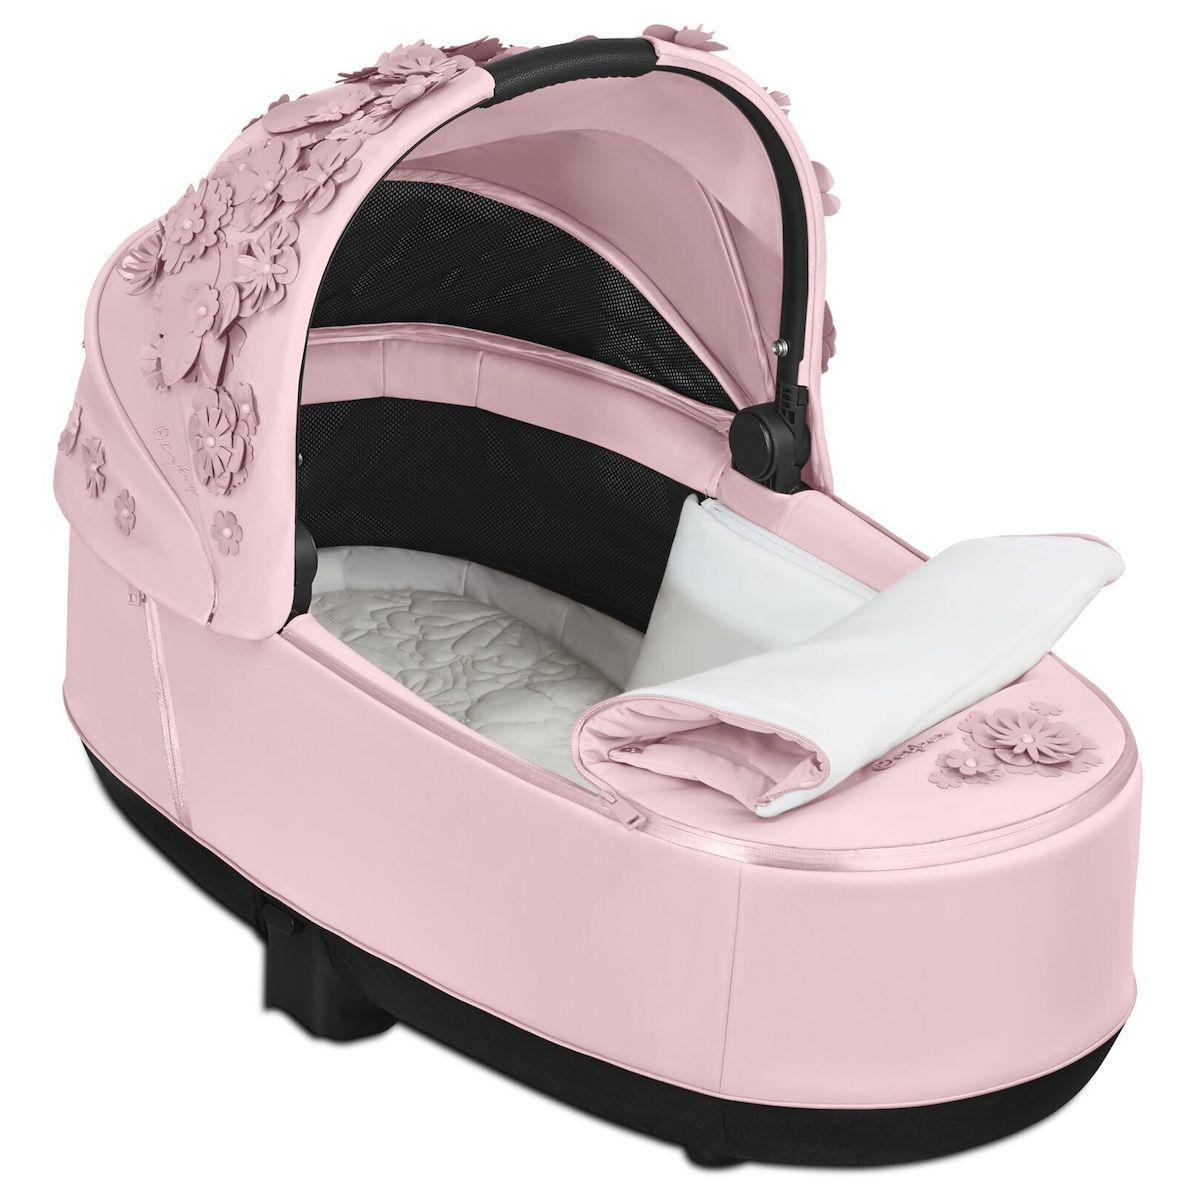 Capazo de luxe PRIAM Cybex Simply Flowers pink